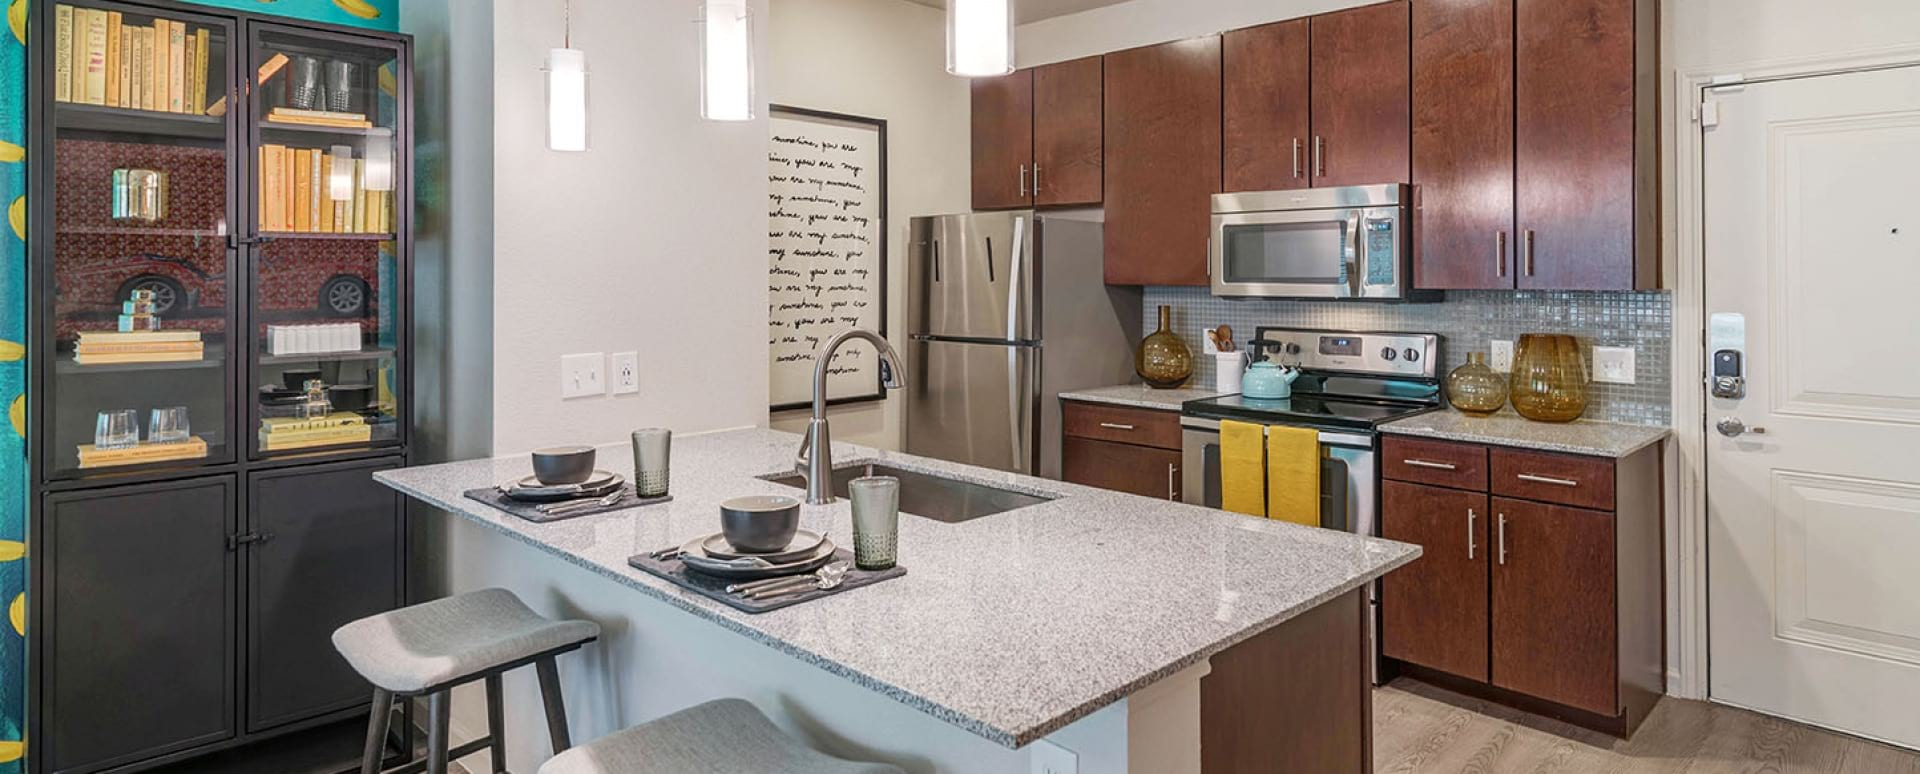 Kitchen with modern cabinetry at our upscale apartments in South Austin, TX